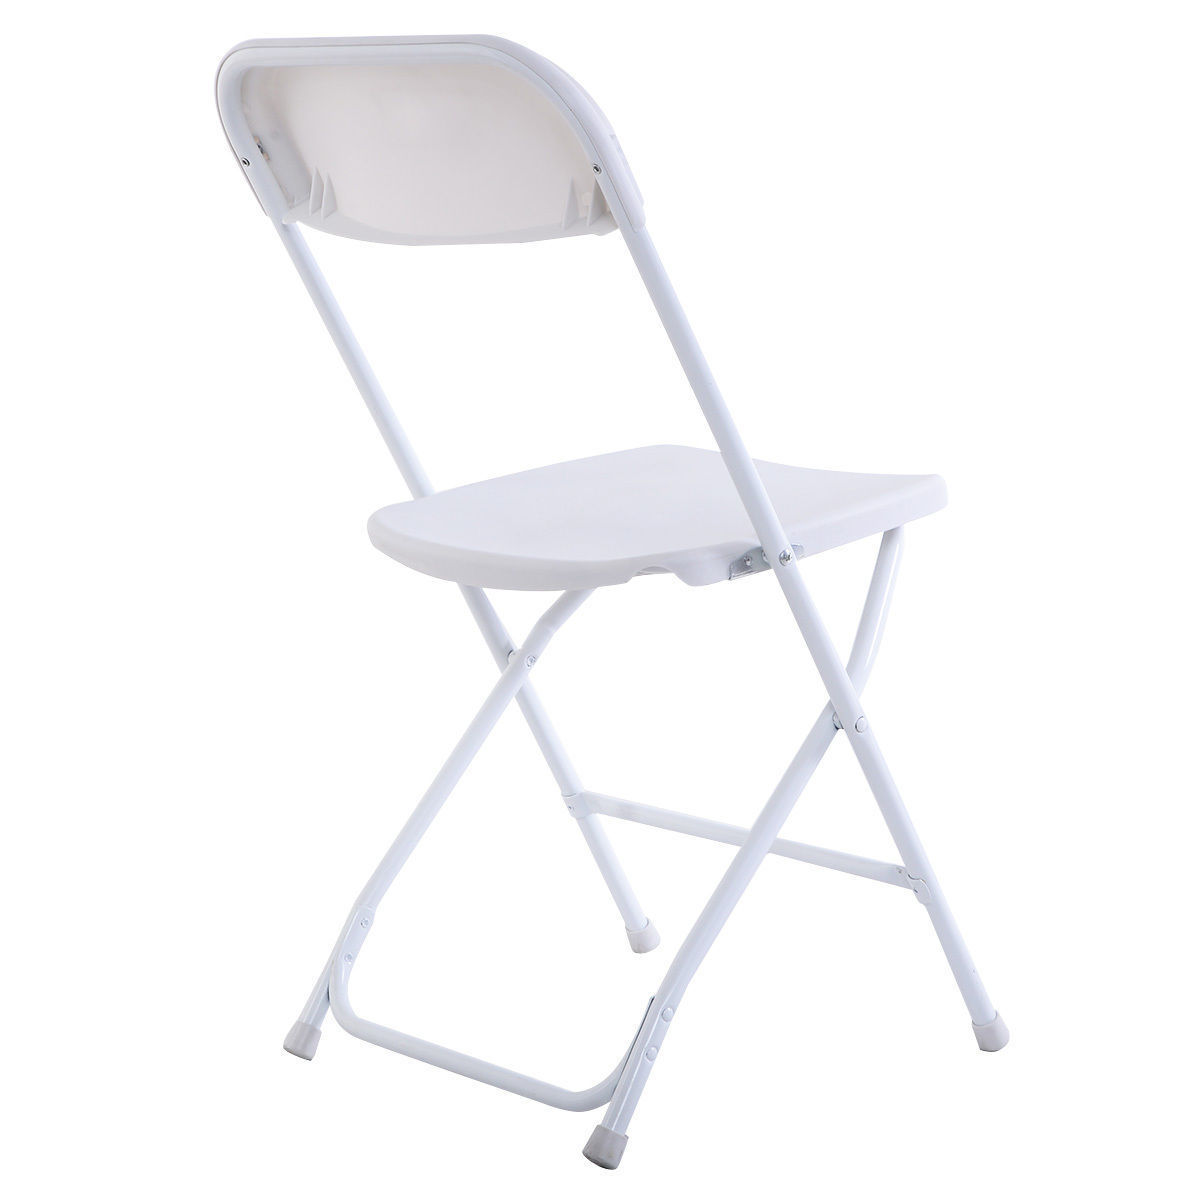 commercial folding chairs dining on casters 5pcs new white plastic stackable